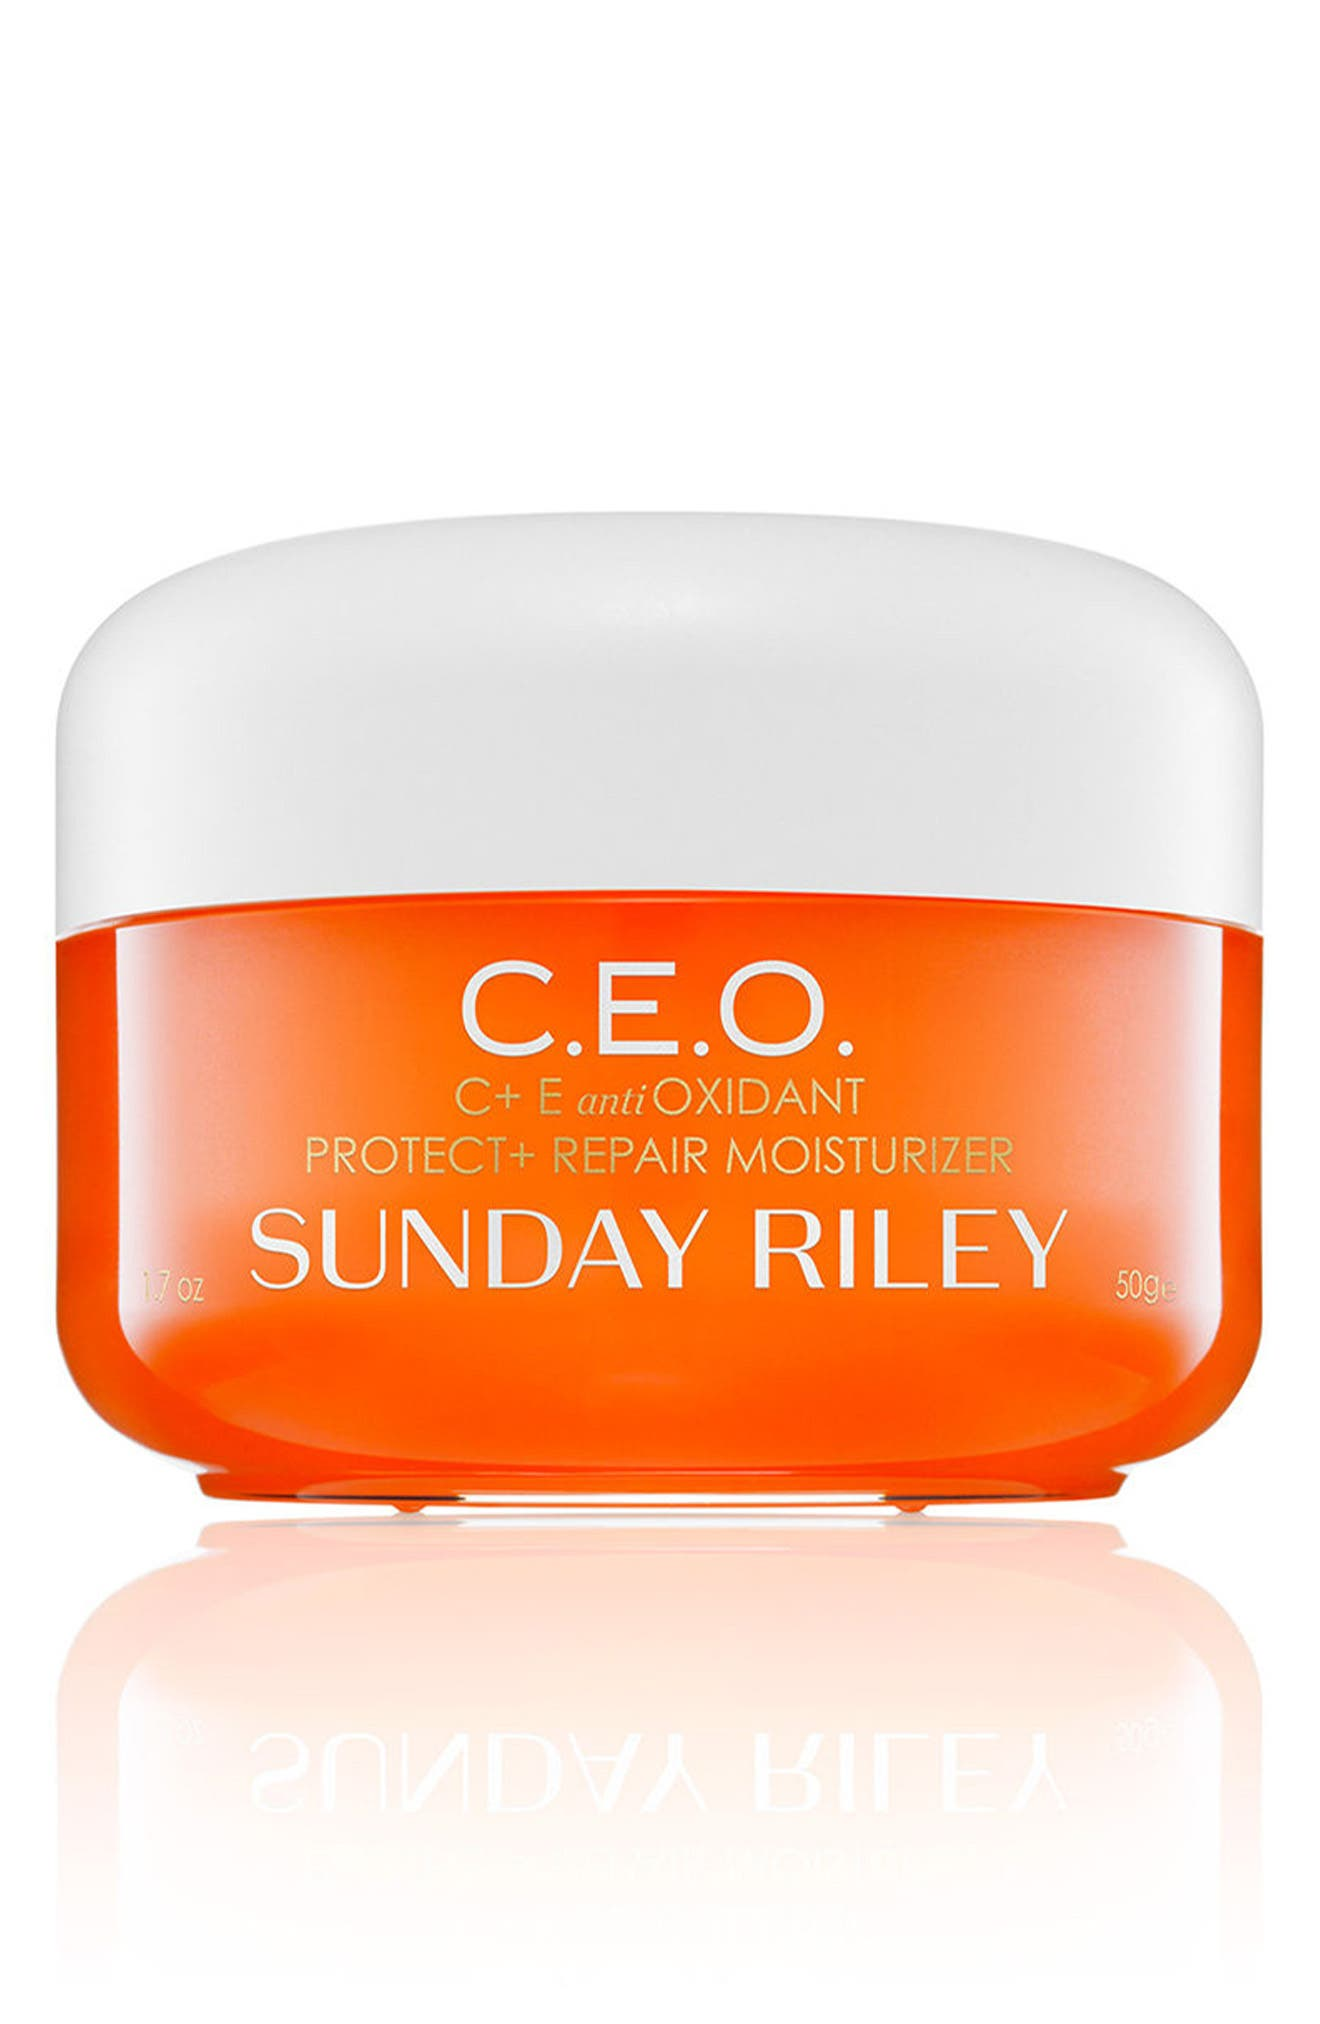 Alternate Image 1 Selected - SPACE.NK.apothecary Sunday Riley C.E.O. C + E Antioxidant Protect & Repair Moisturizer